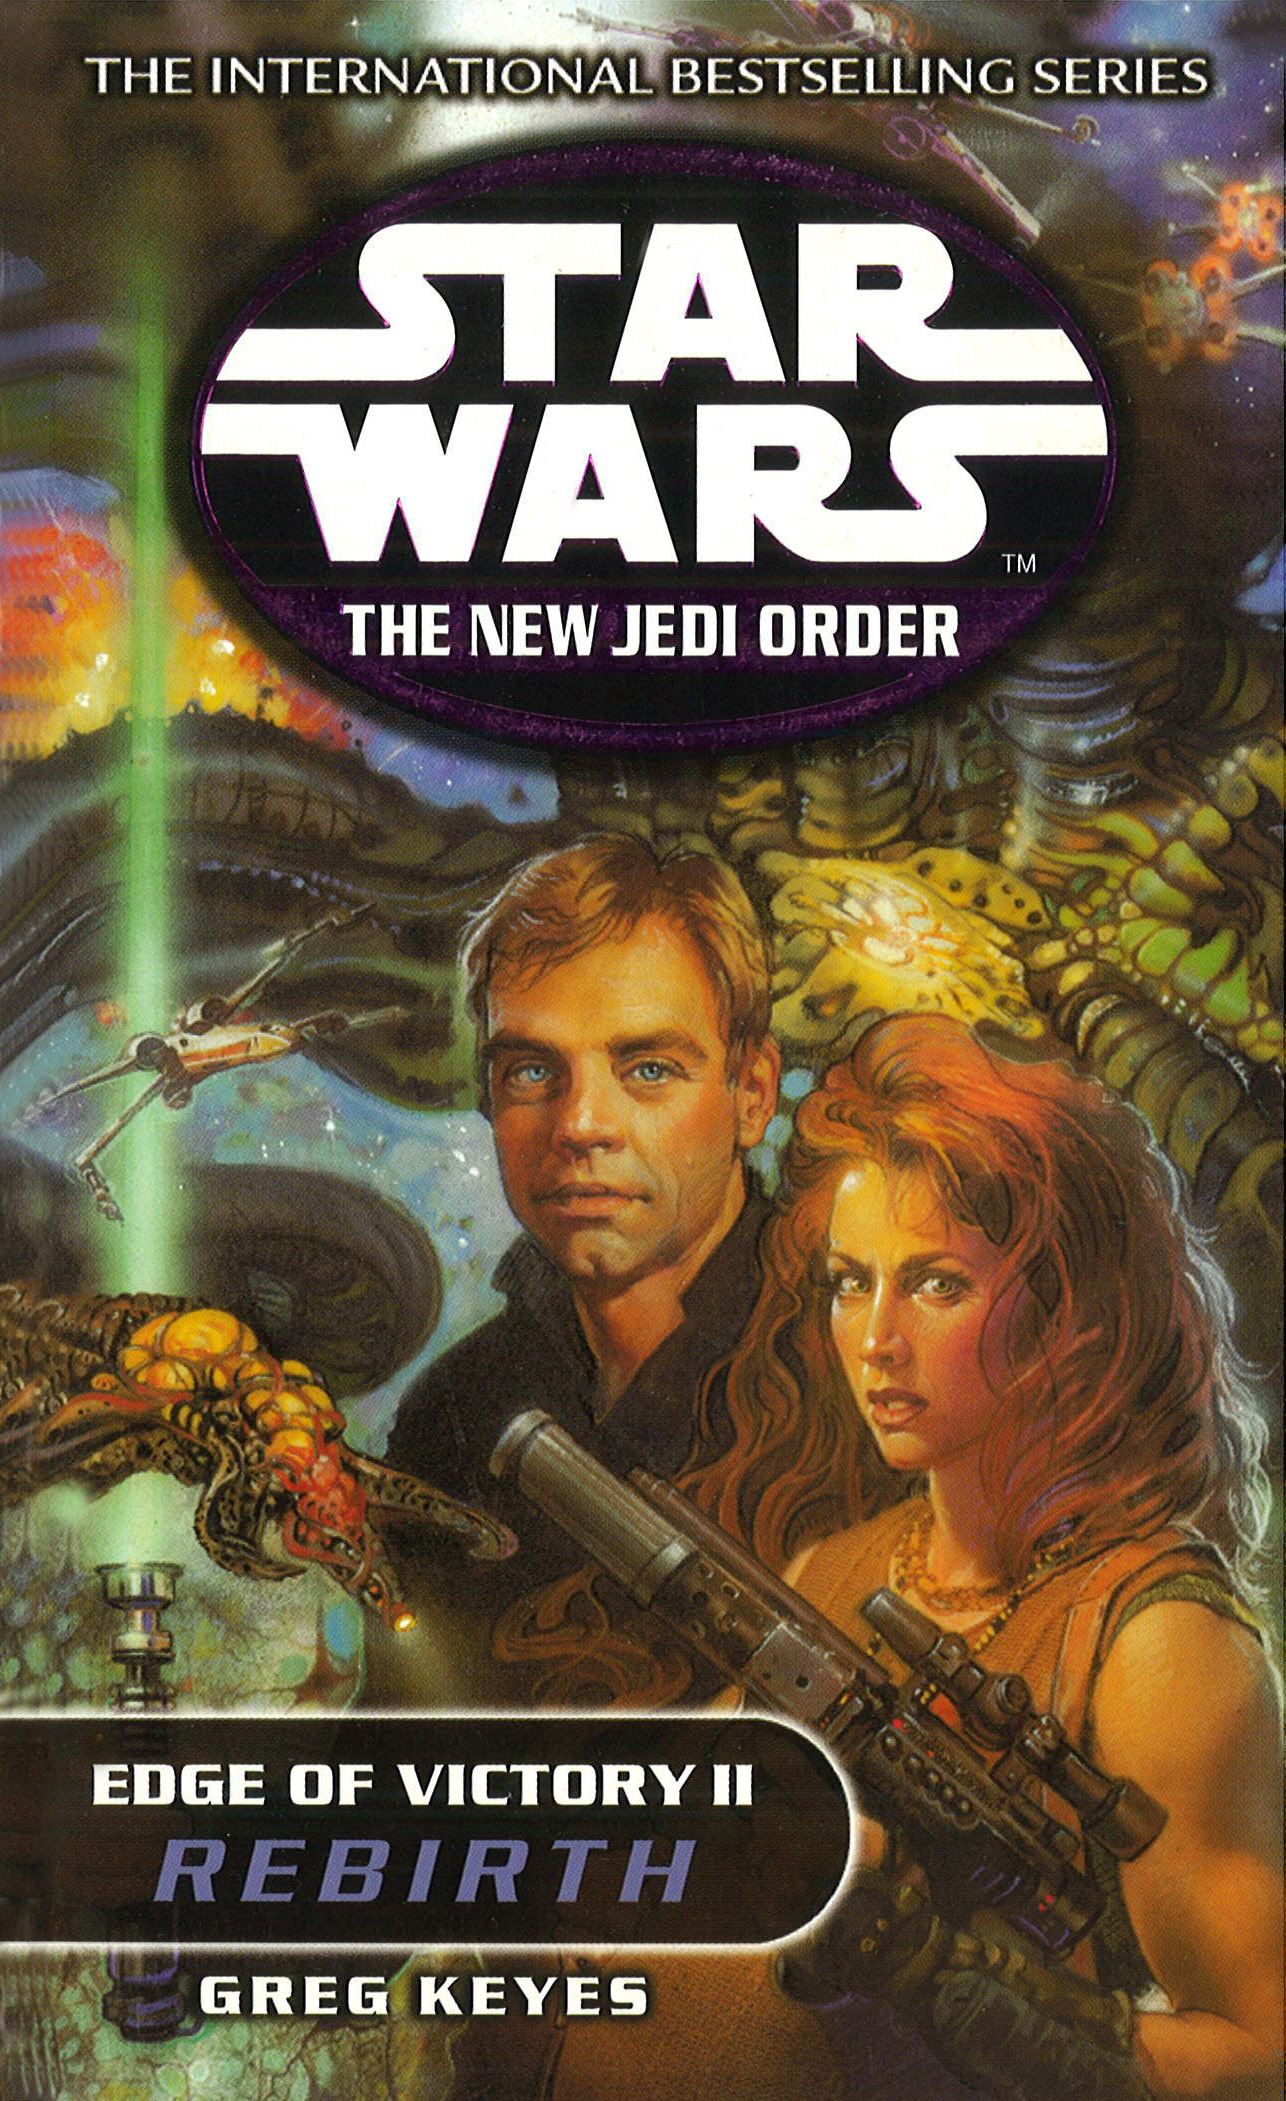 Star Wars: The New Jedi Order - Edge Of Victory Rebirth